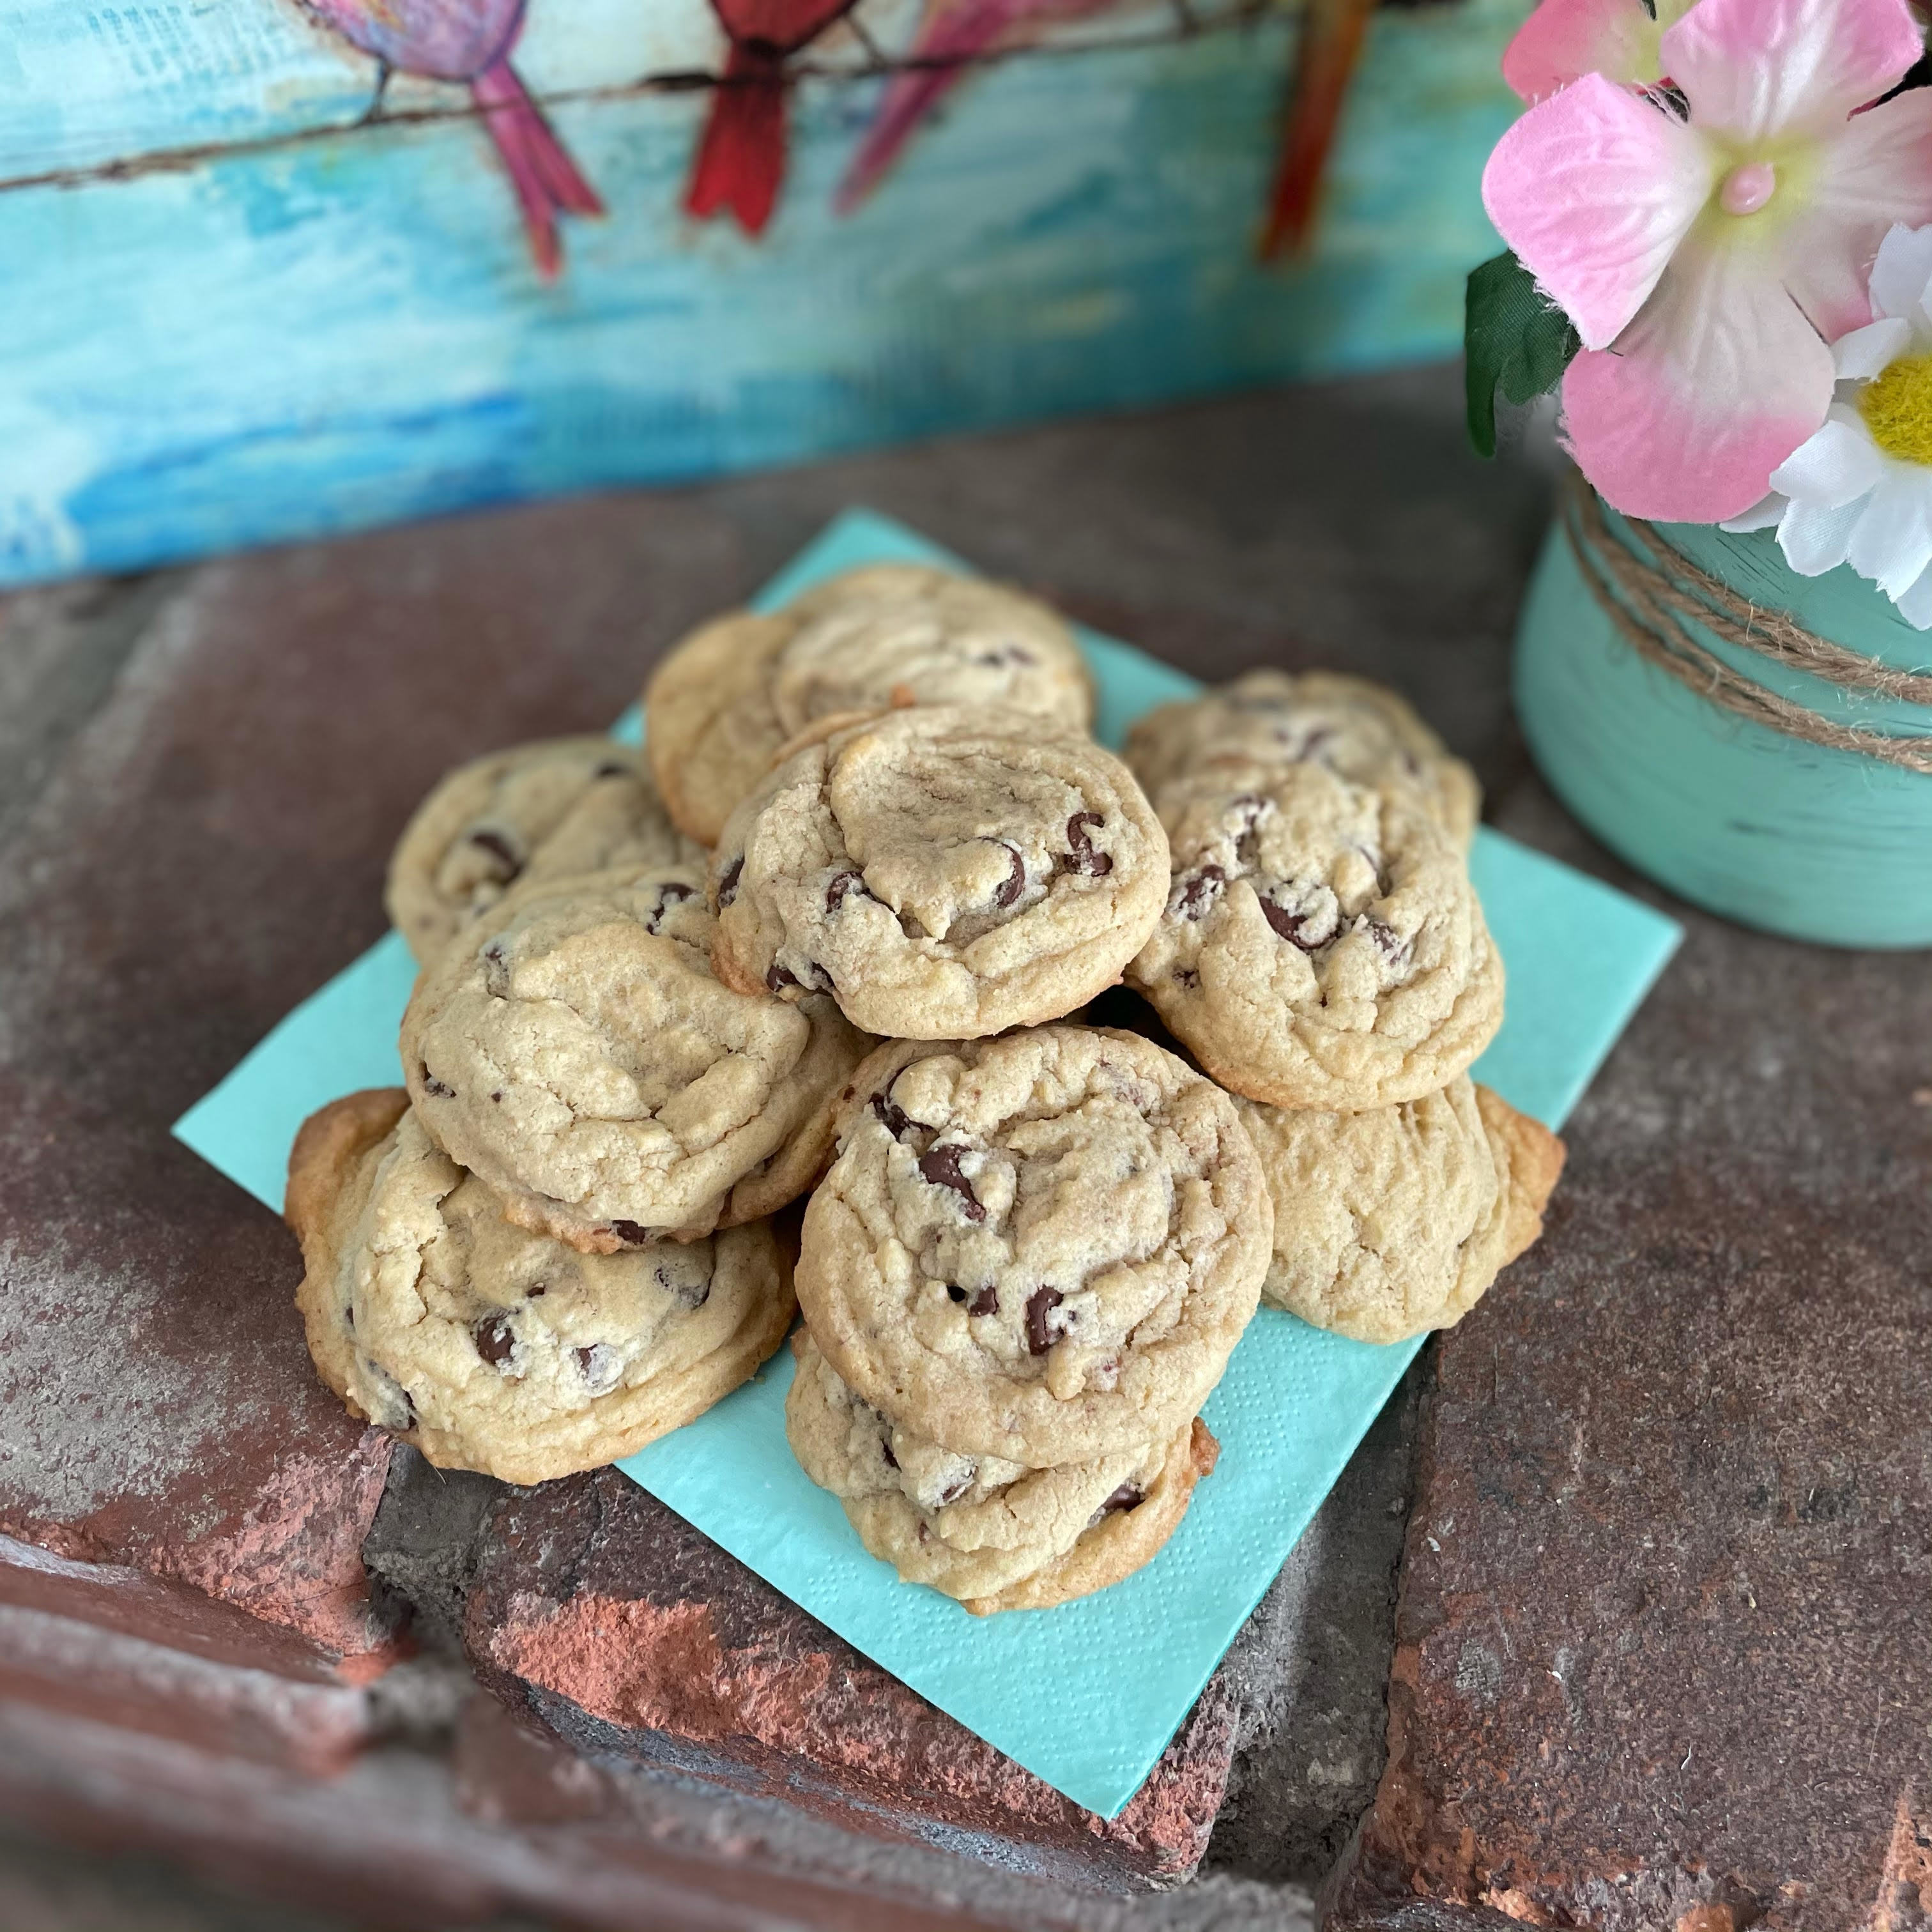 Chocolate Chip Cookies by Cassidy